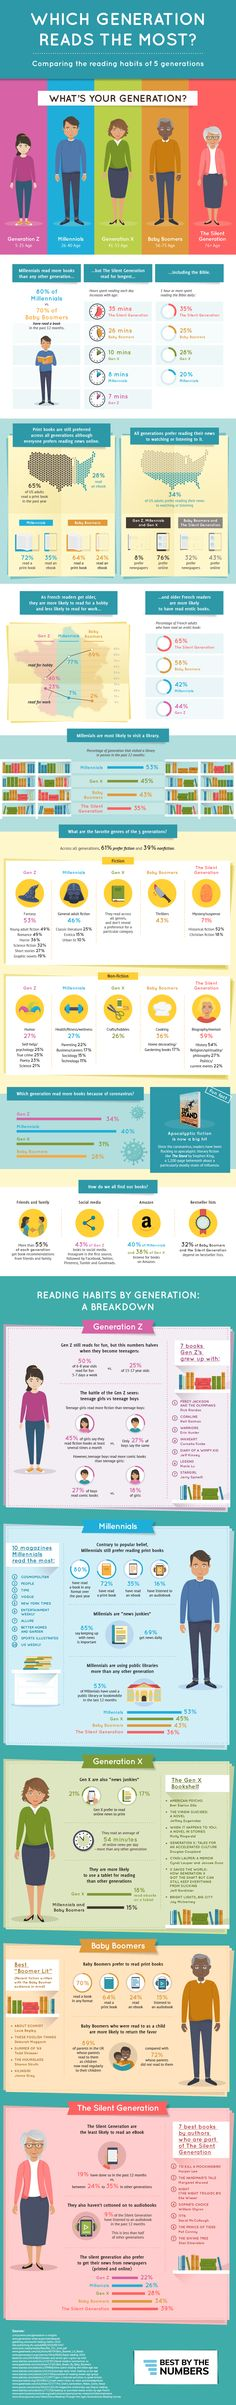 Which Generation Reads The Most?